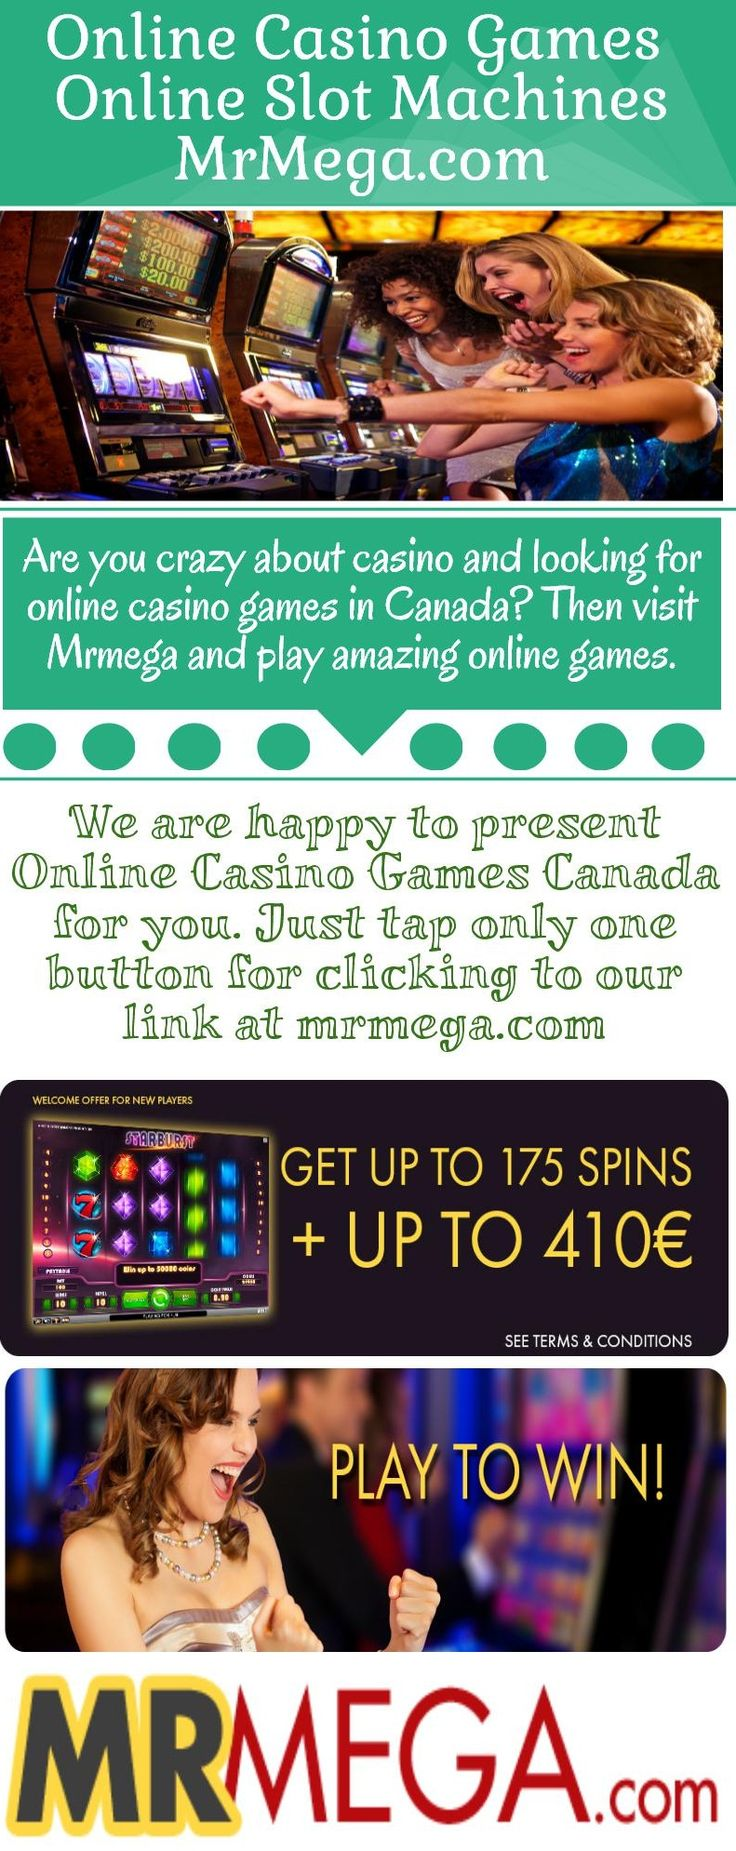 We are giving a chance for playing Online Casino games in Canada; don't get late for playing online games just visit at mrmega.com and play amazing games. https://www.mrmega.com/Online-Casino-Canada